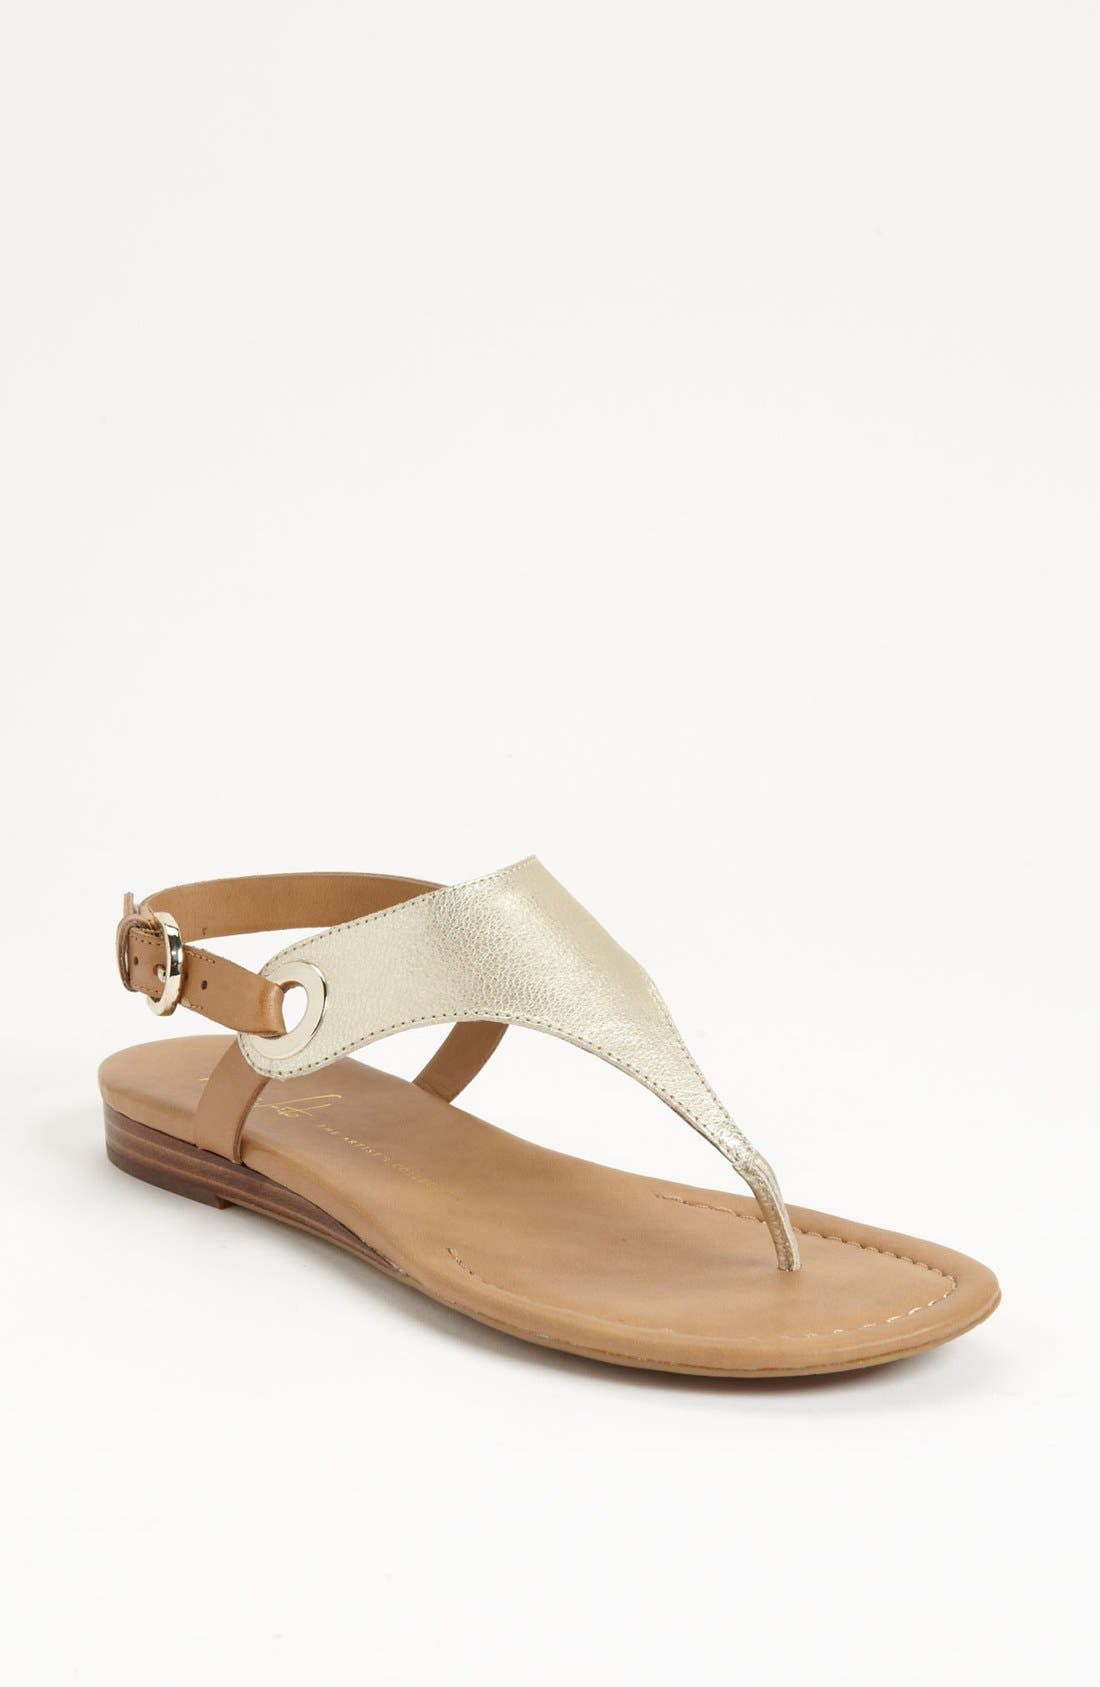 Grip Sandal by Franco Sarto low shipping sale online excellent cheap online discount fashion Style yWtseuE